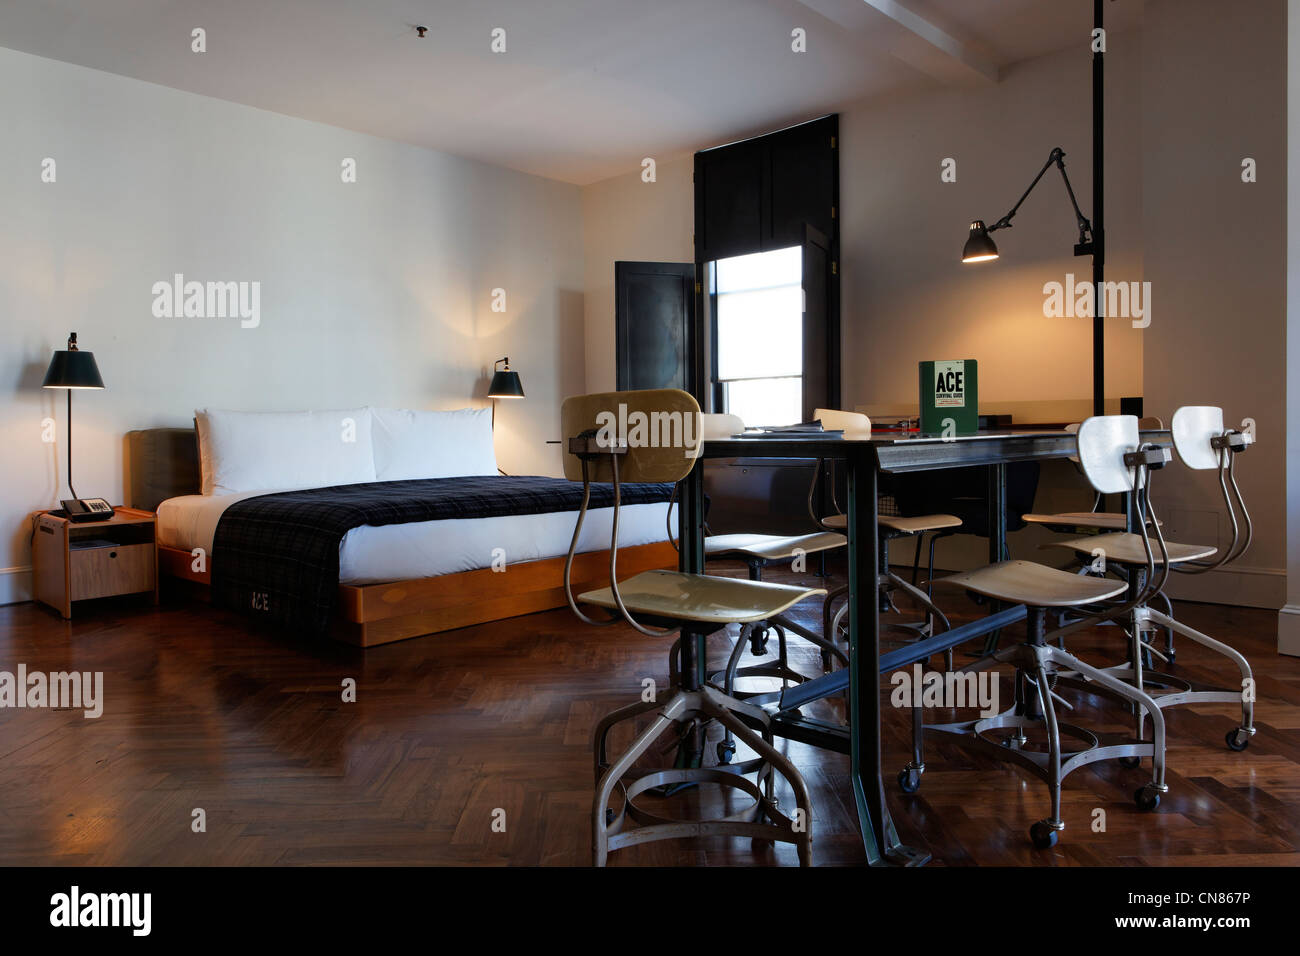 United States, New York City, Manhattan, Ace hotel, room, 20 West on 29th Street - Stock Image